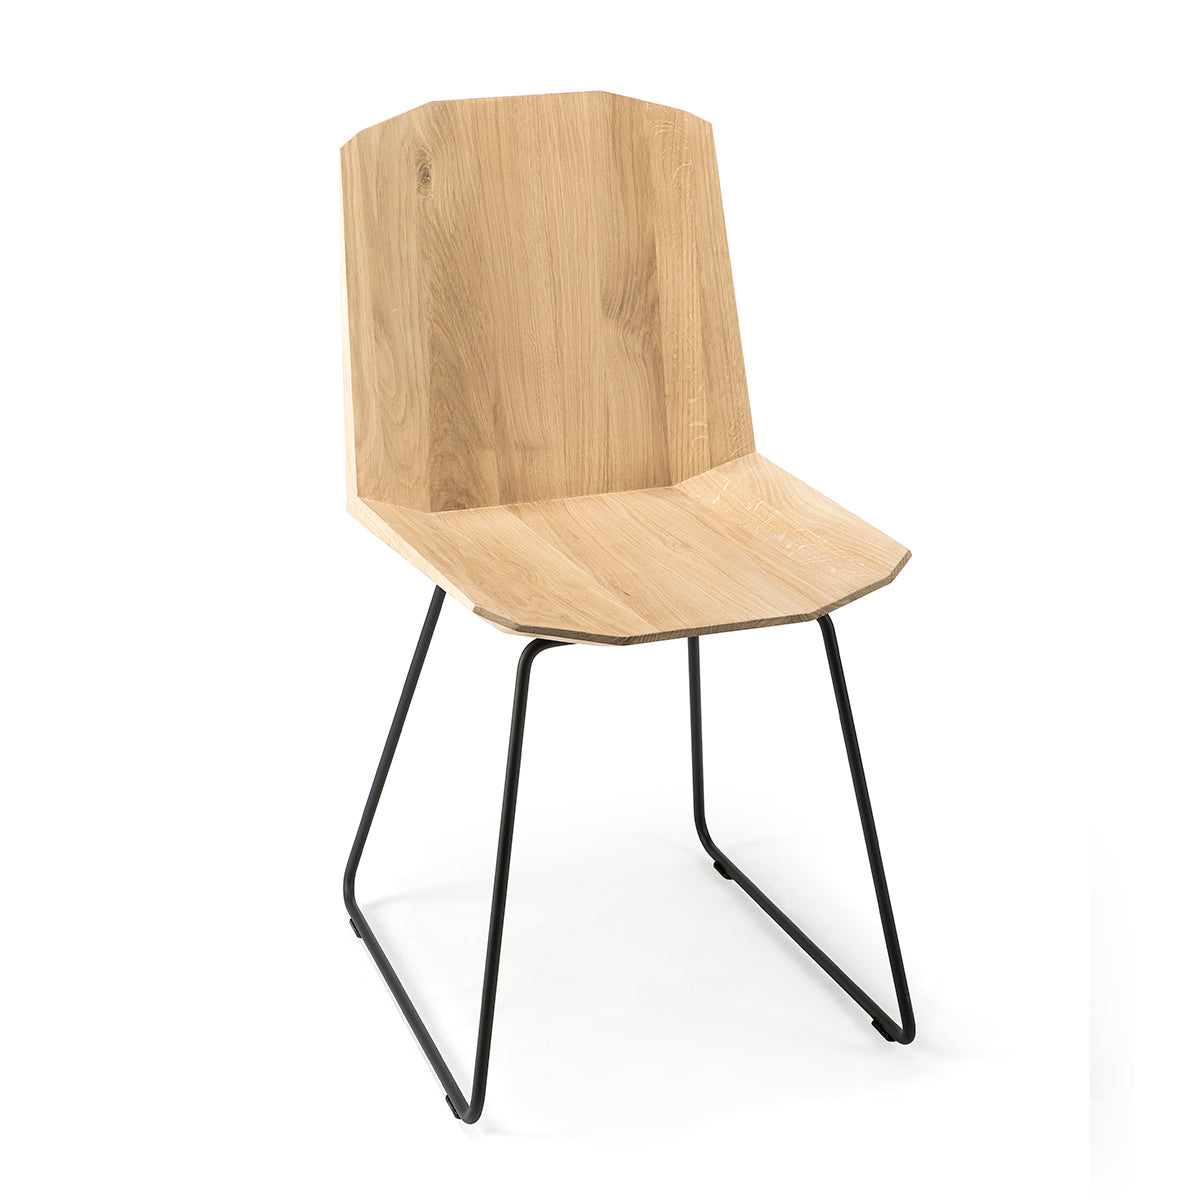 Ethnicraft Oak Facette Dining Chair